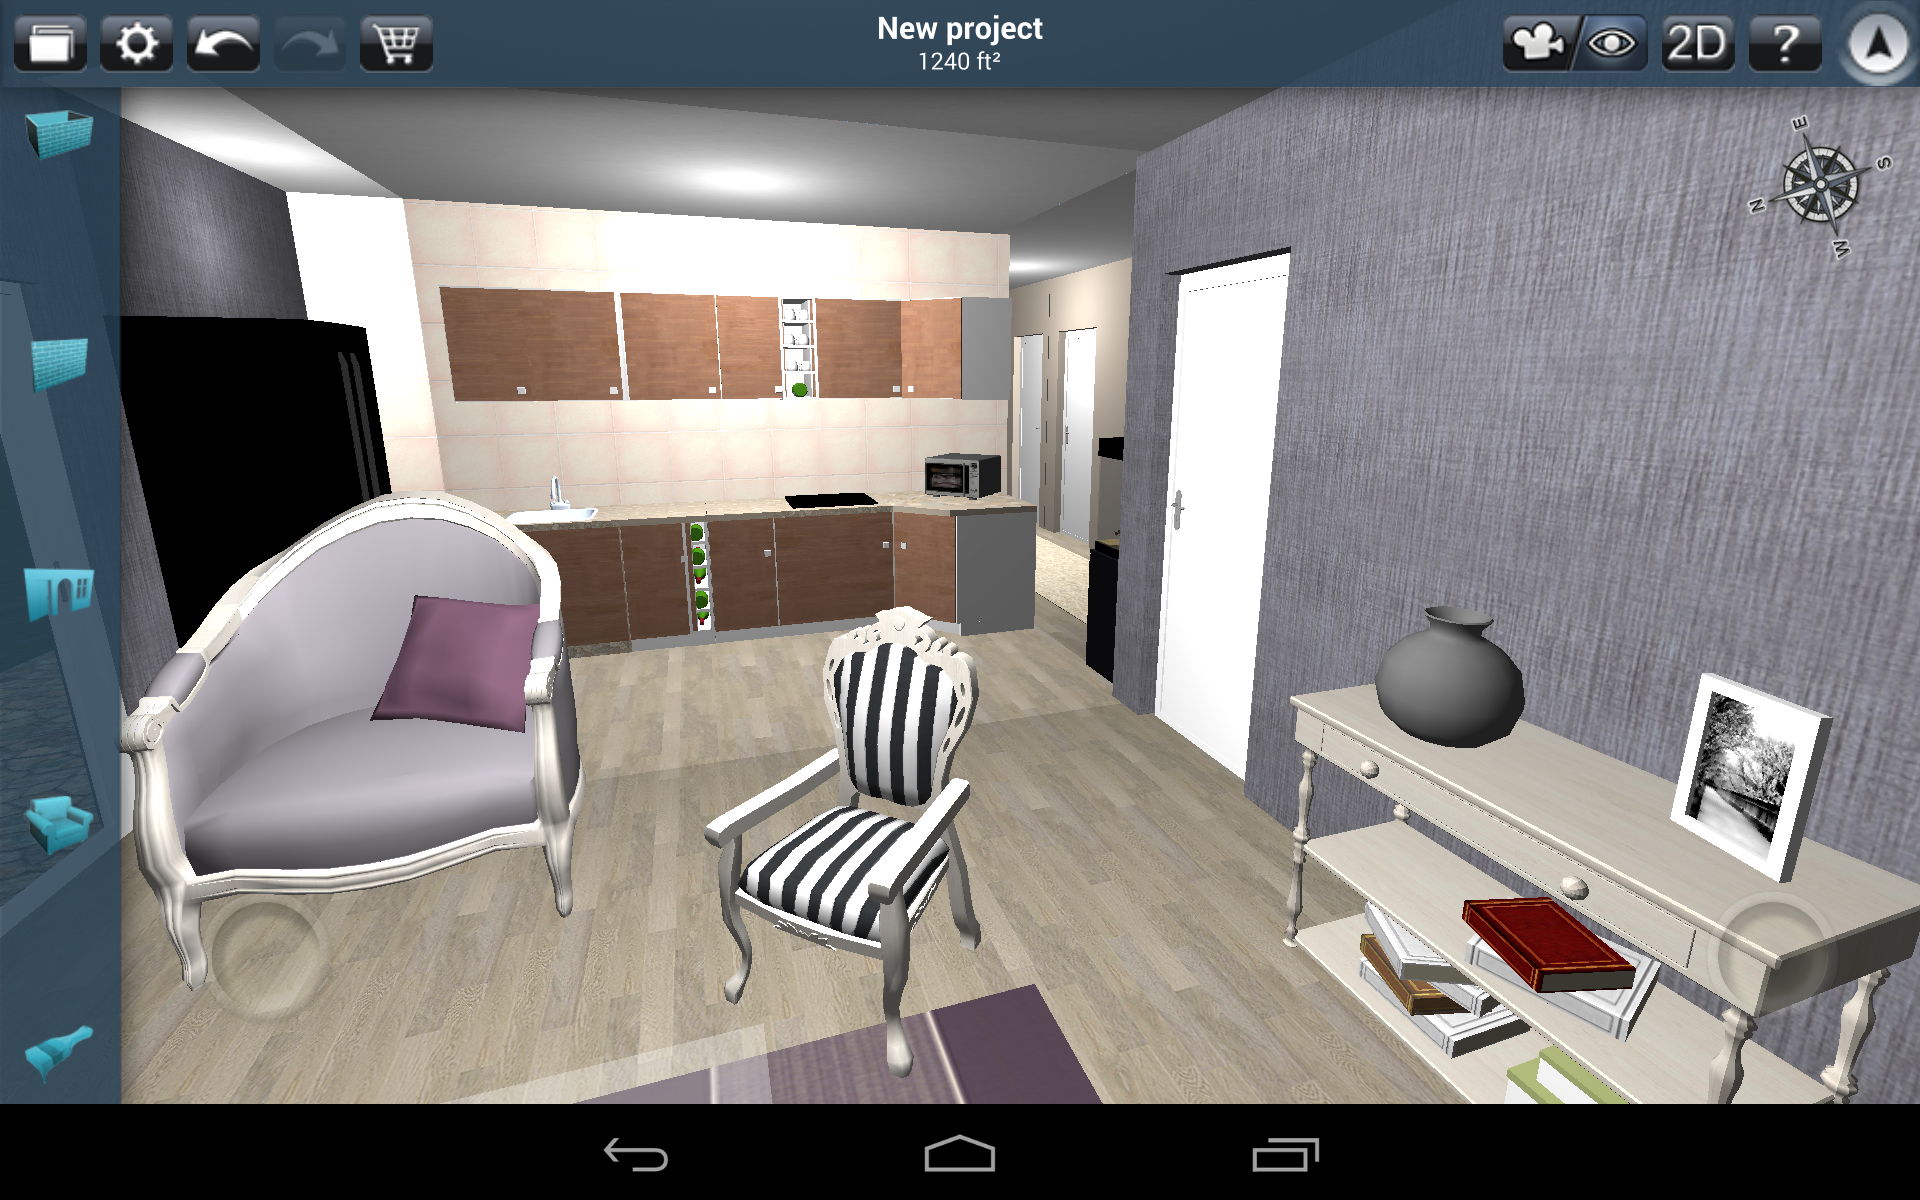 Kitchen. Created with #homedesign3d app on #Android. http://bit.ly/11lHyqp